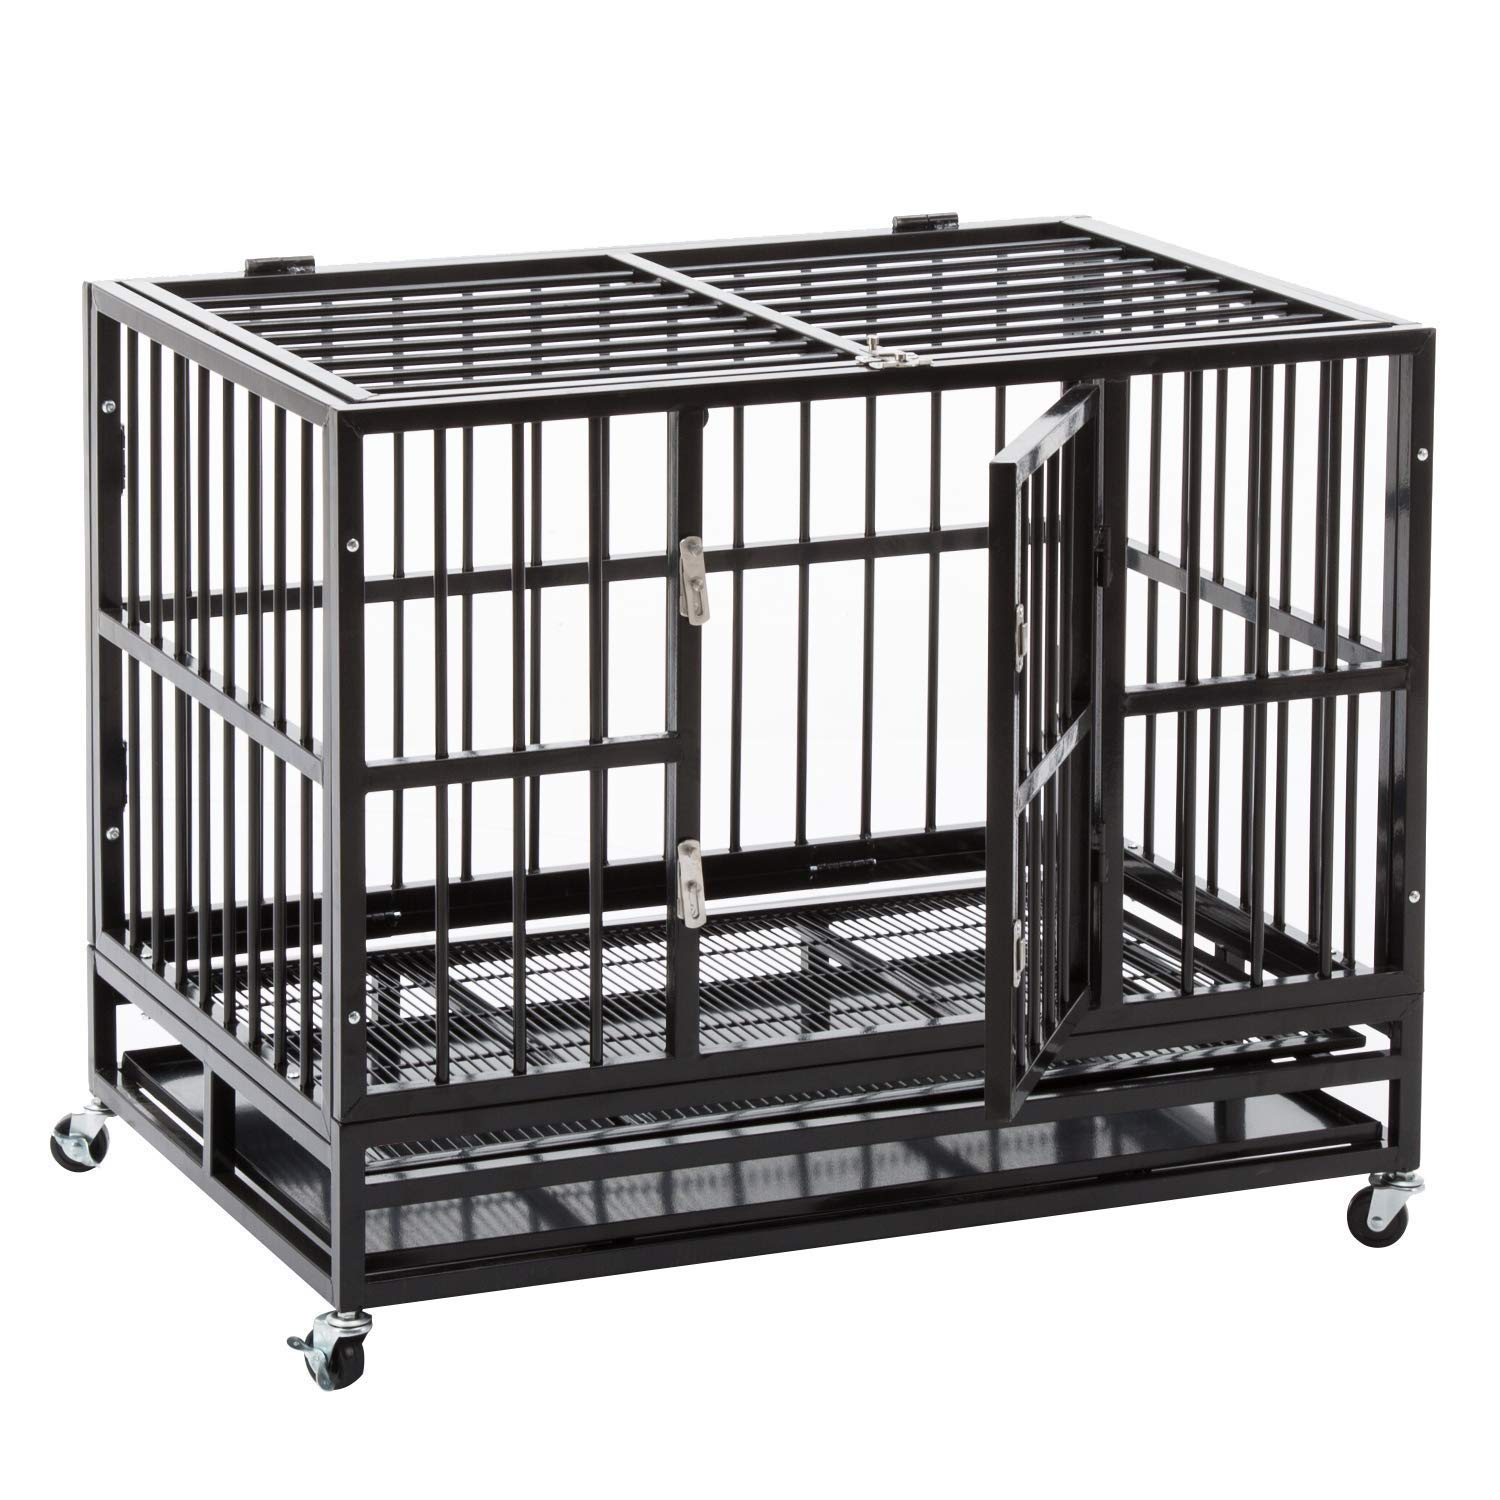 Heavy Duty 36/42/48 inch Dog Crate Strong Folding Metal Pet Kennel Playpen with Three Prevent Escape Lock, Large Dogs Cage with Four Wheels, Black Silver